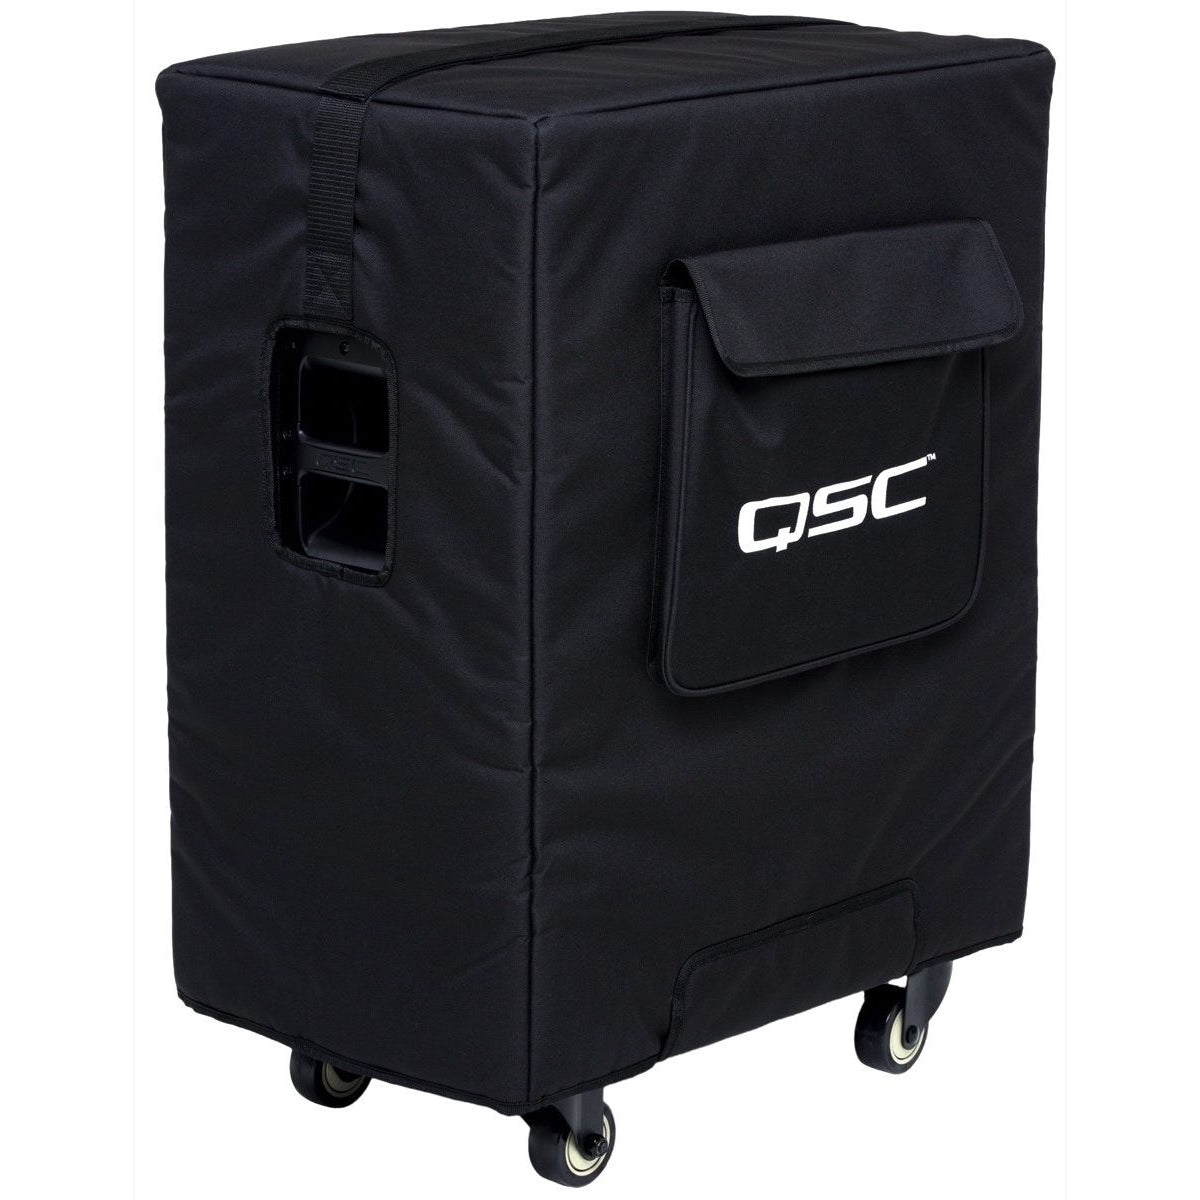 QSC KS212C-CVR Soft Cover for KS-212C Subwoofer